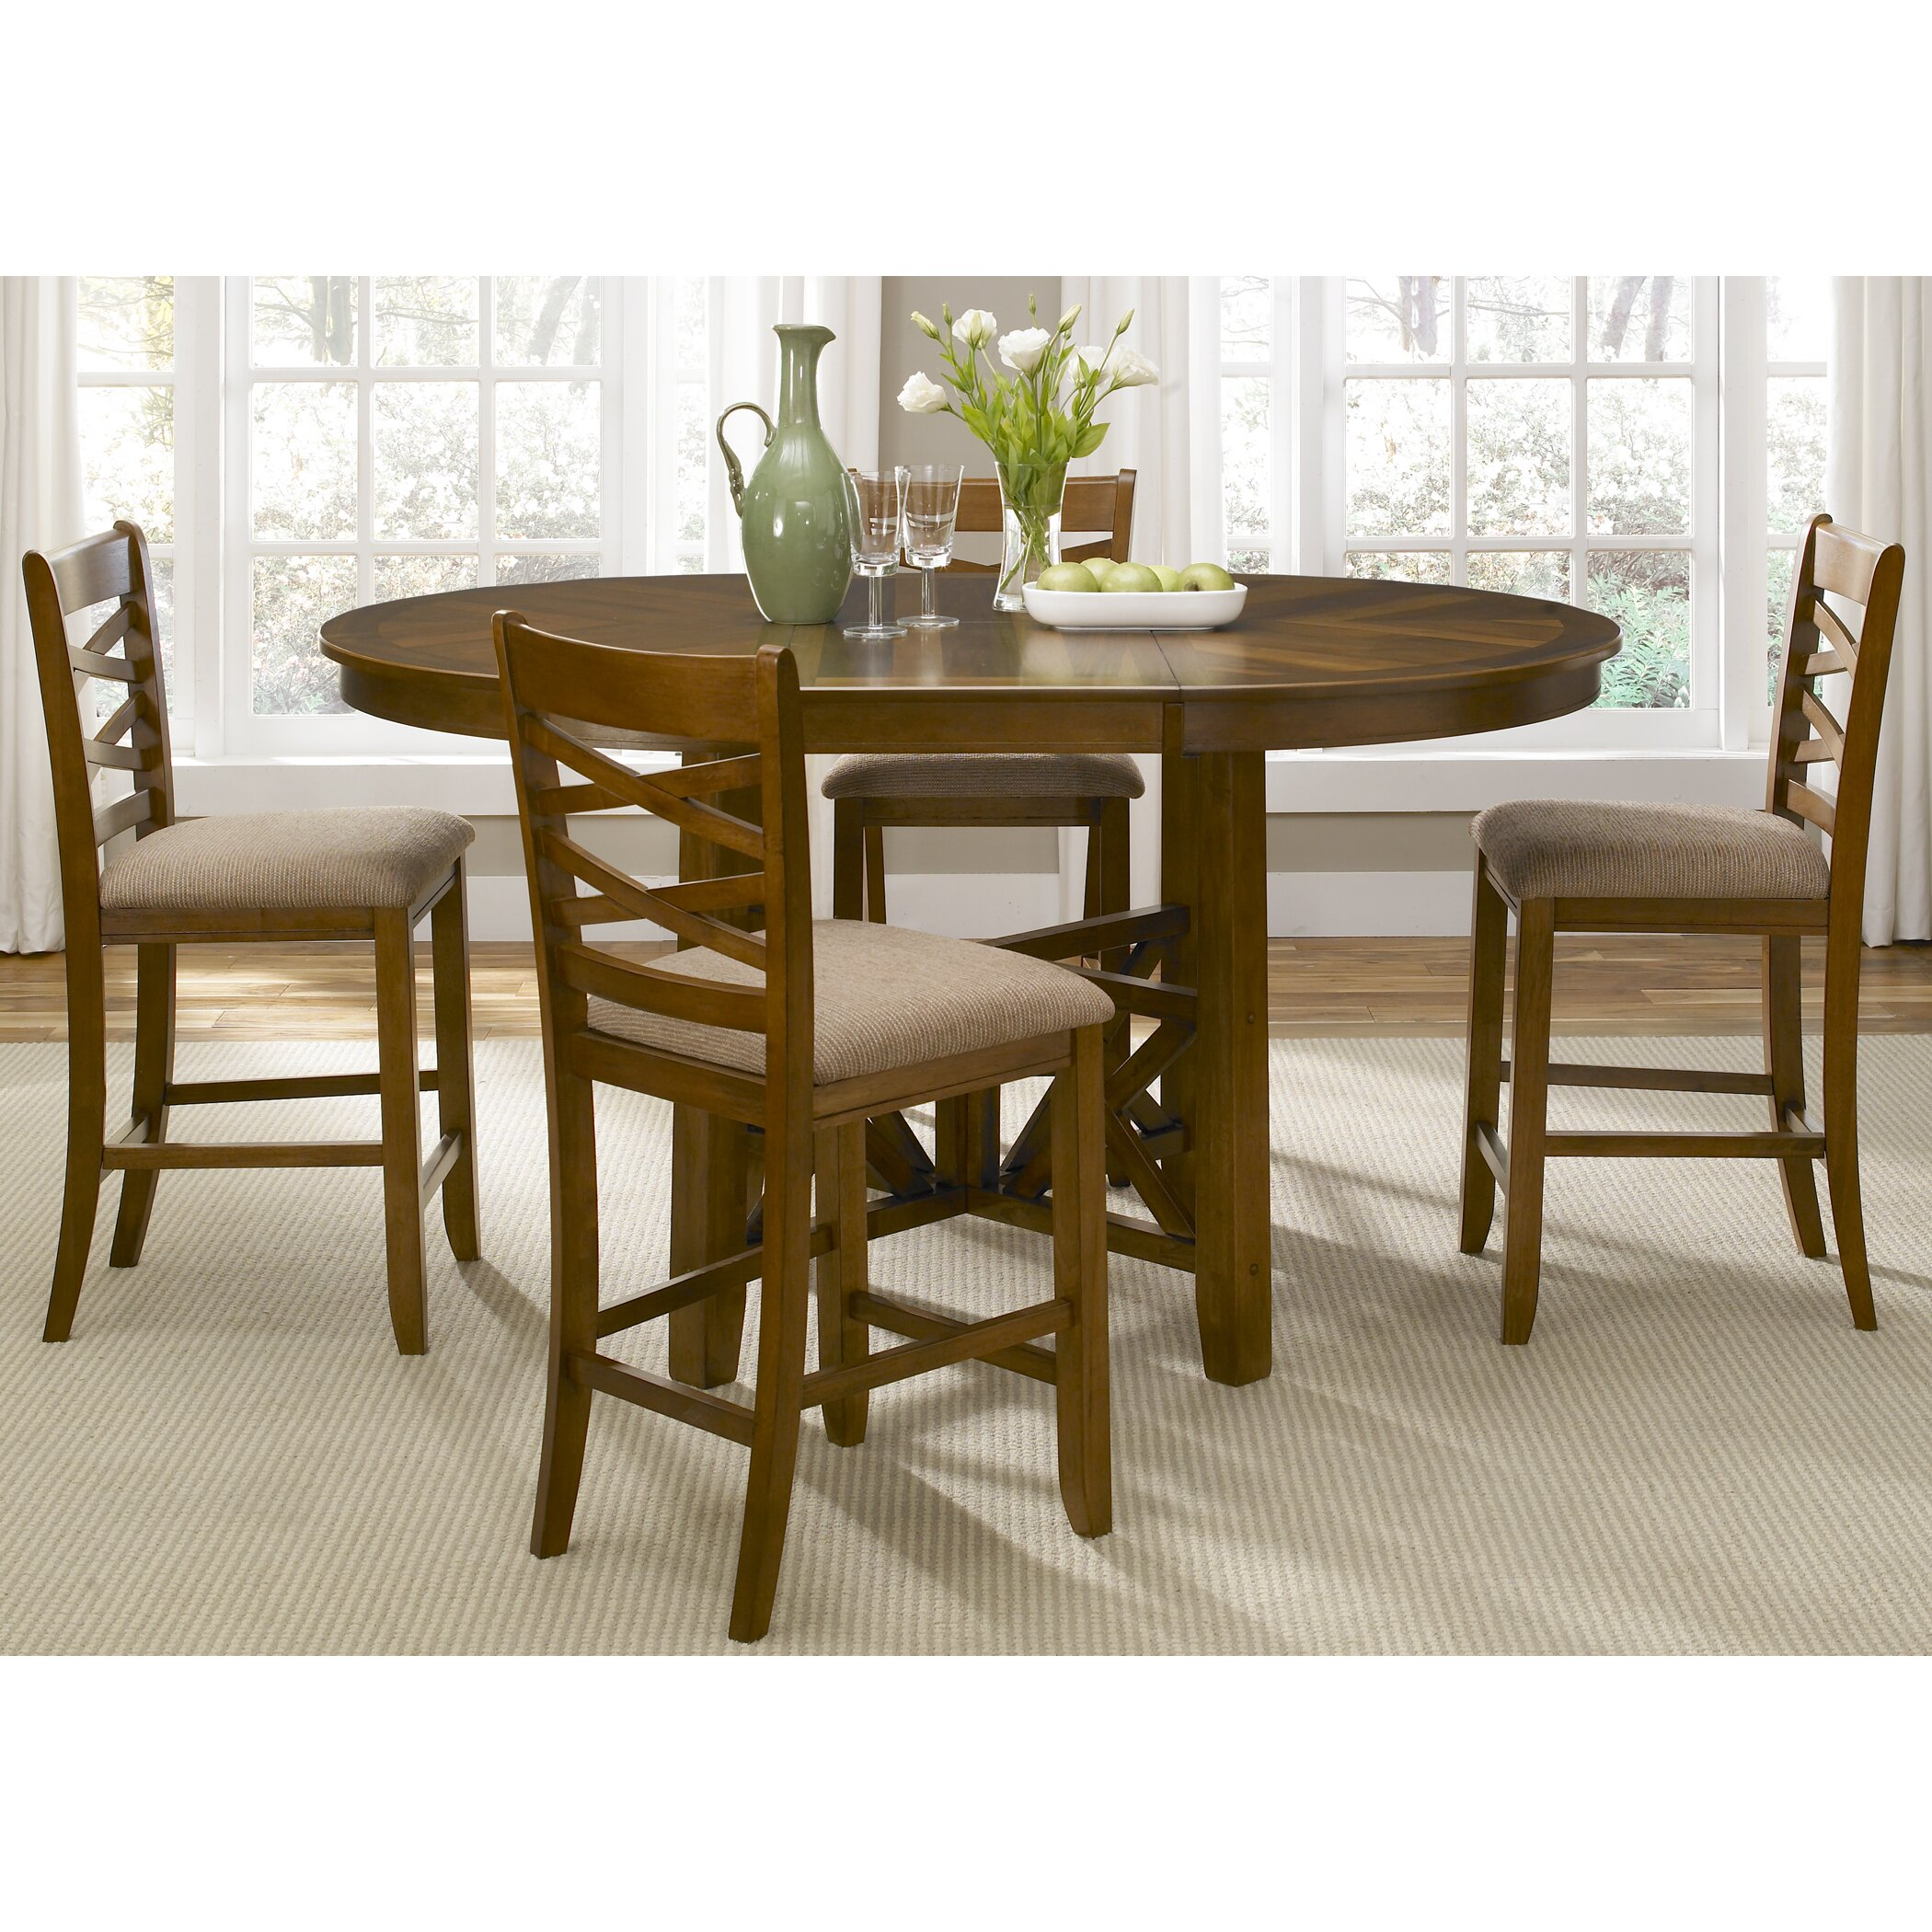 Liberty Furniture Bistro 5 Piece Dining Set amp Reviews  :  from www.wayfair.com size 2100 x 2100 jpeg 946kB